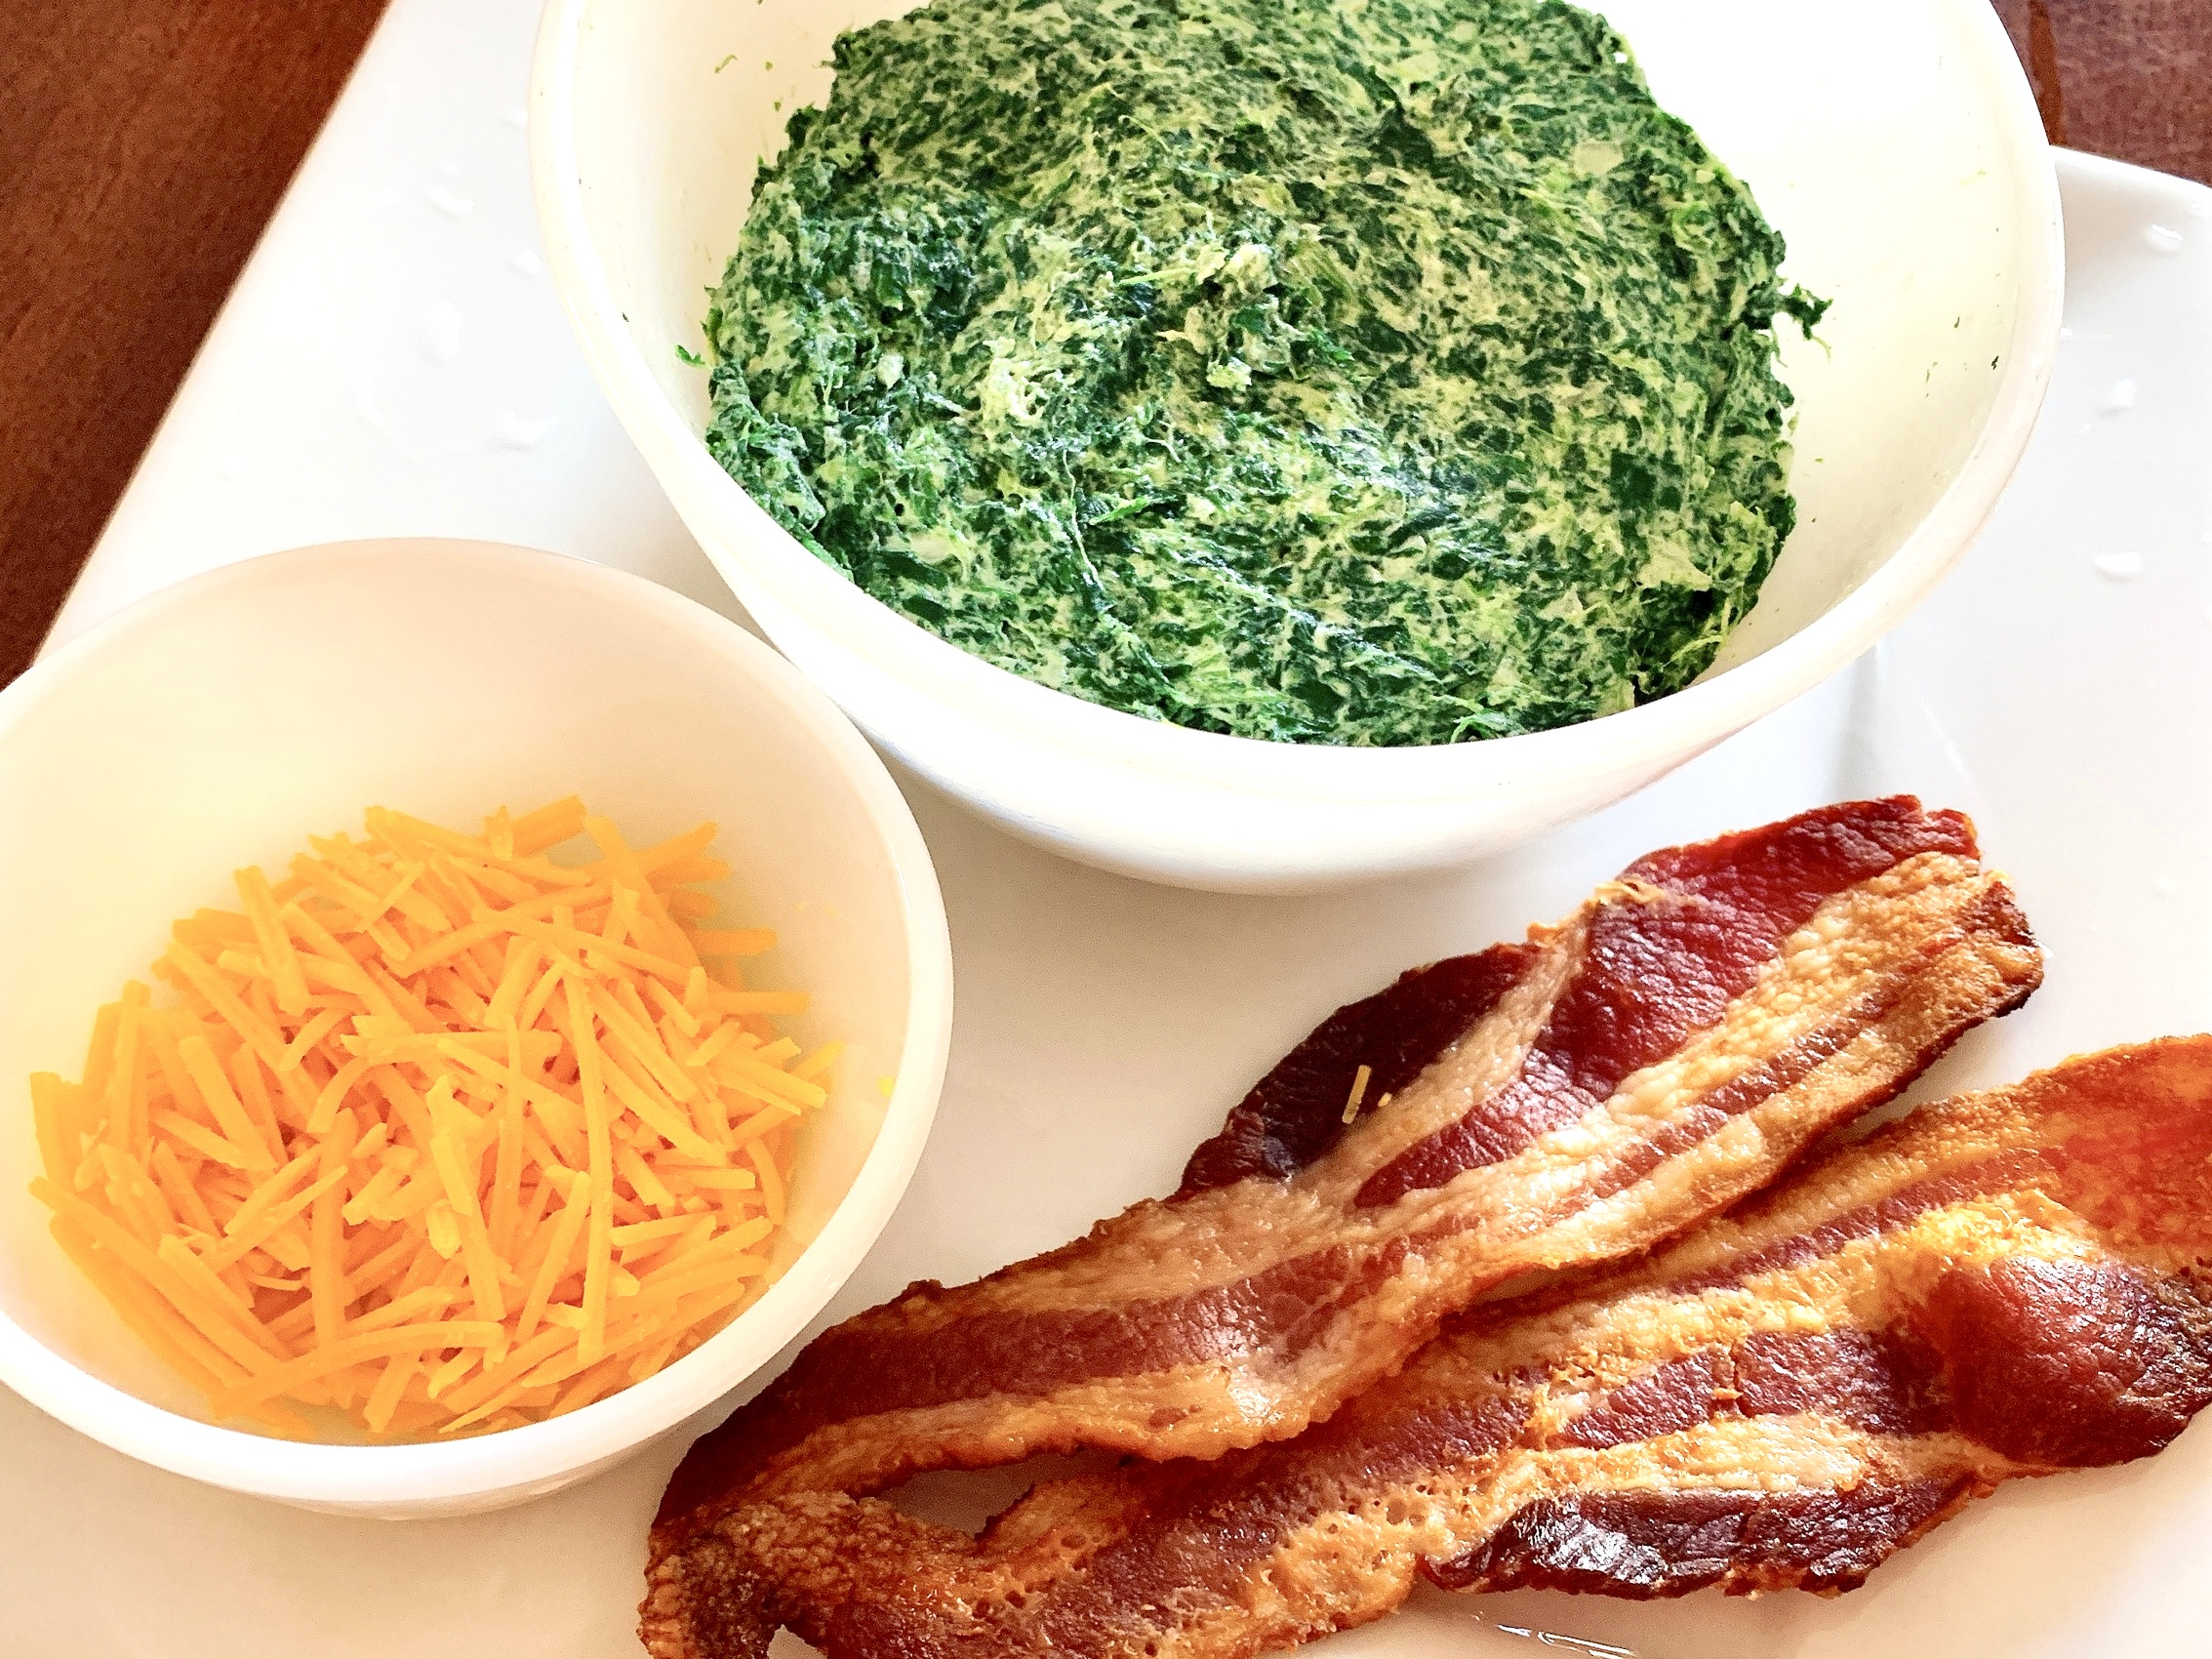 Creamed spinach with cheddar cheese and bacon